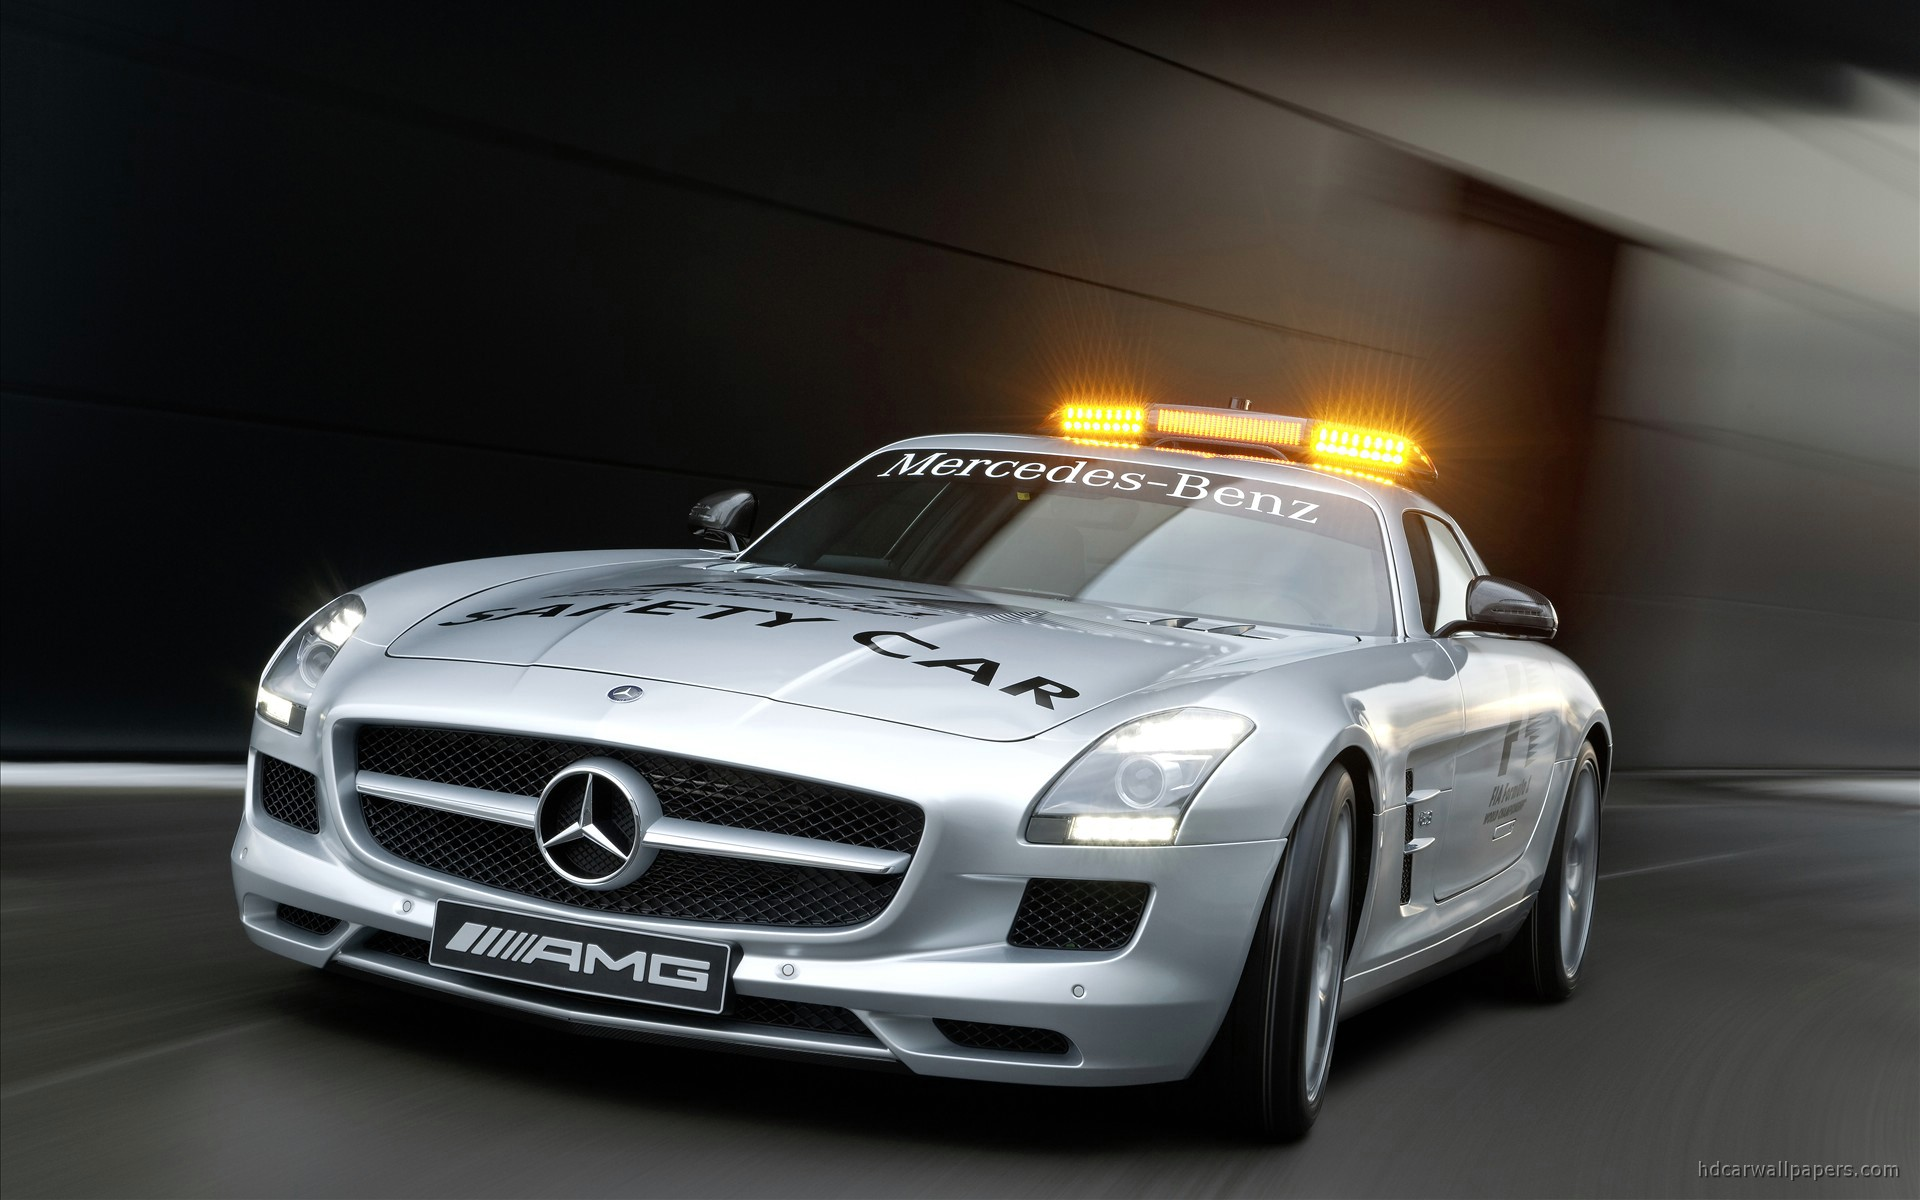 2010 mercedes benz sls amg f1 safety car 3 wallpaper hd for Mercedes benz cars images